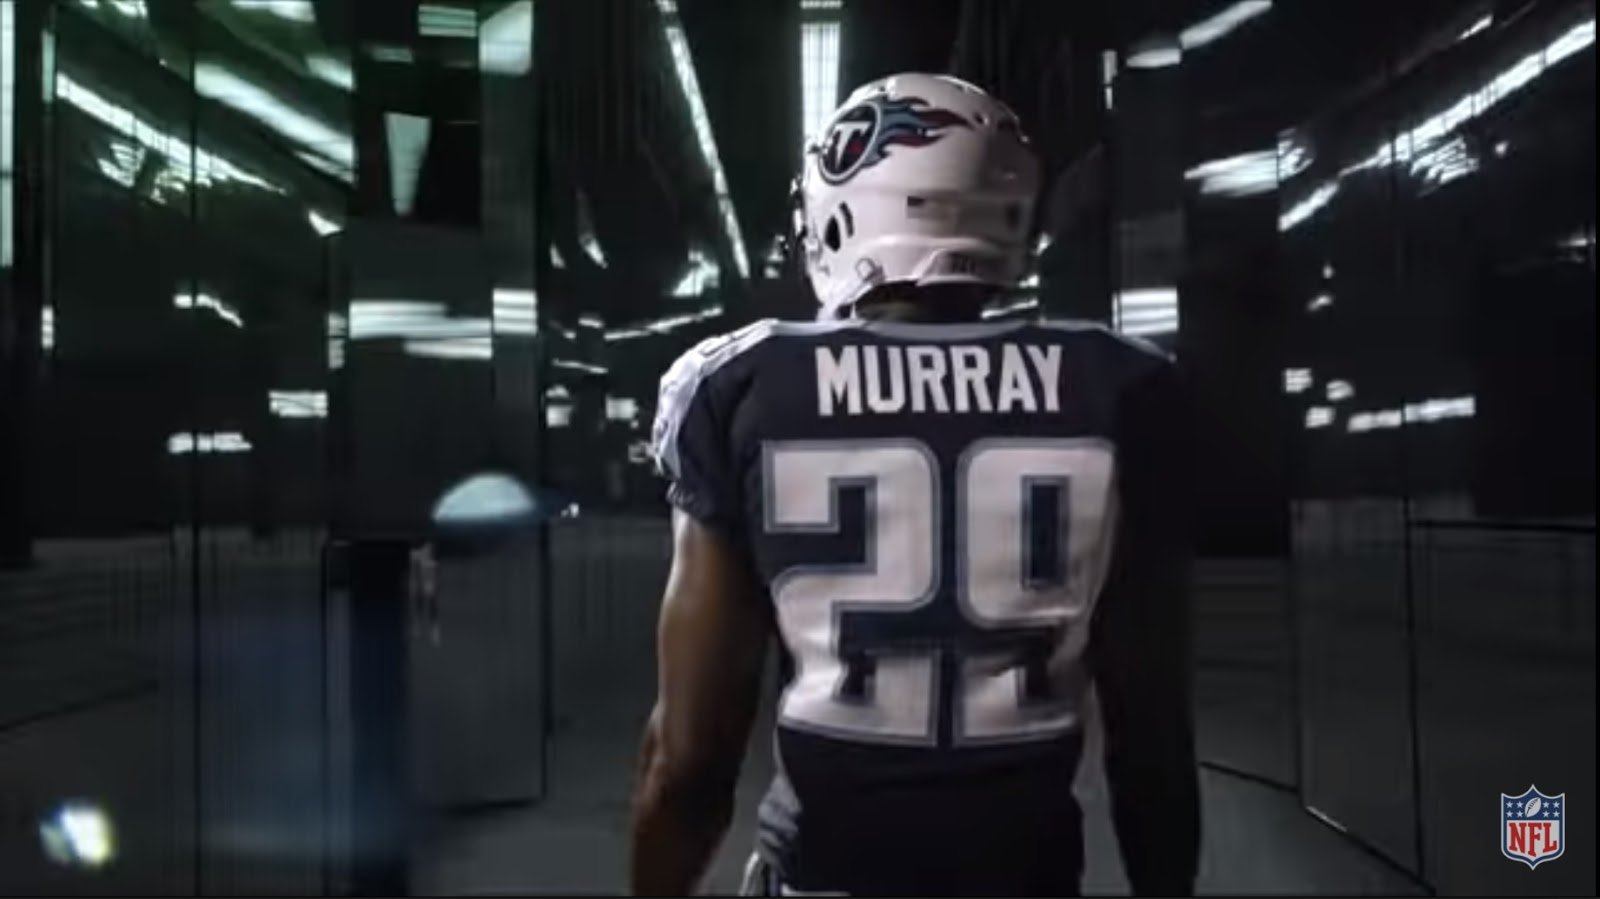 The show continues new nfl commercial featuring the song u rite by